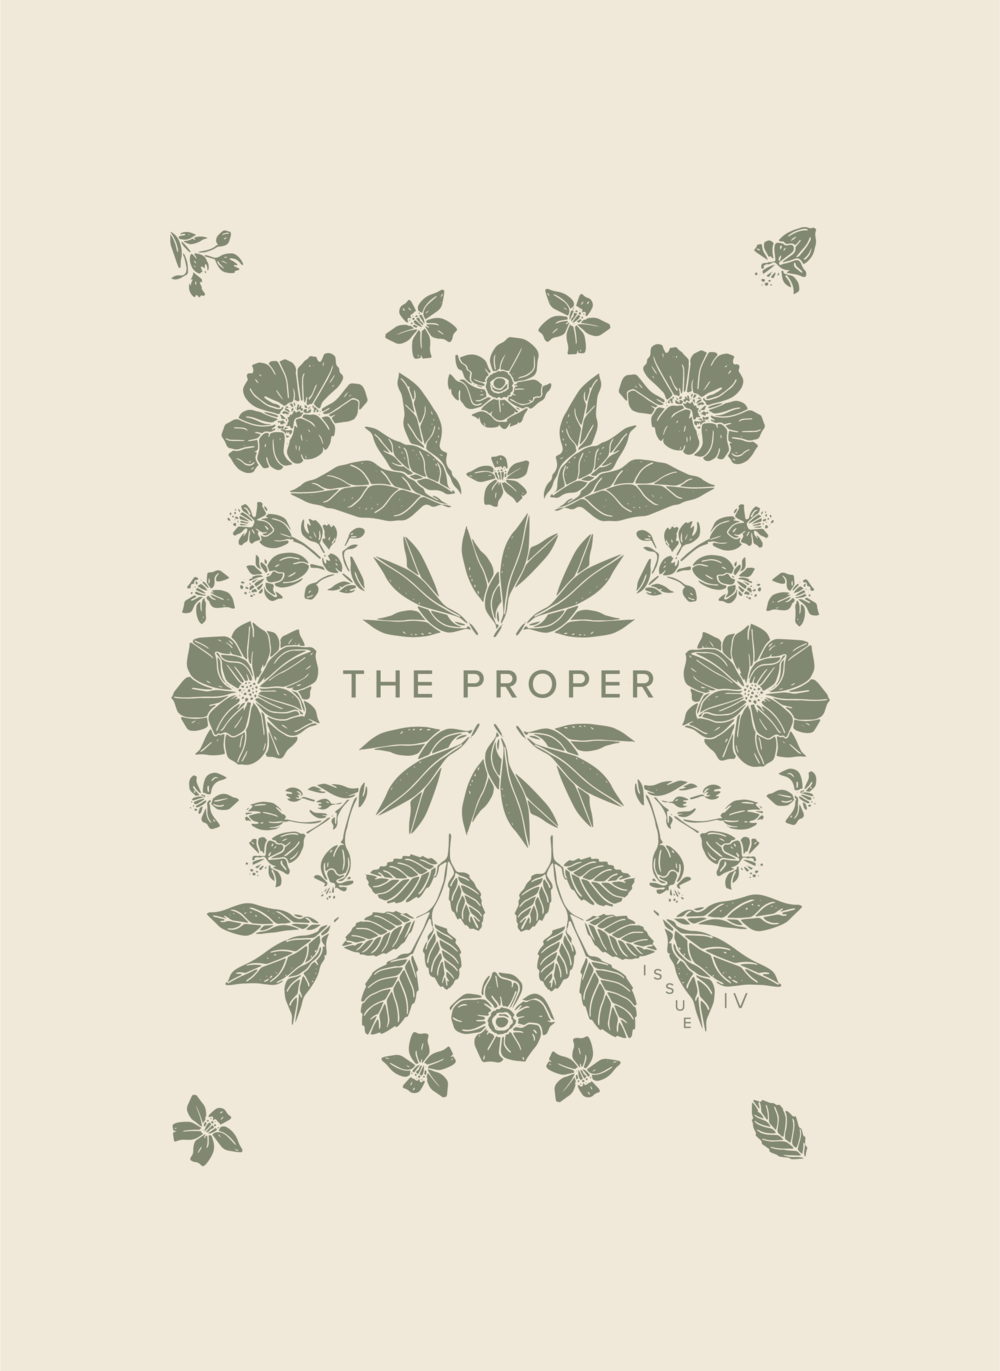 The Proper Newspaper | Issue IV Cover Design